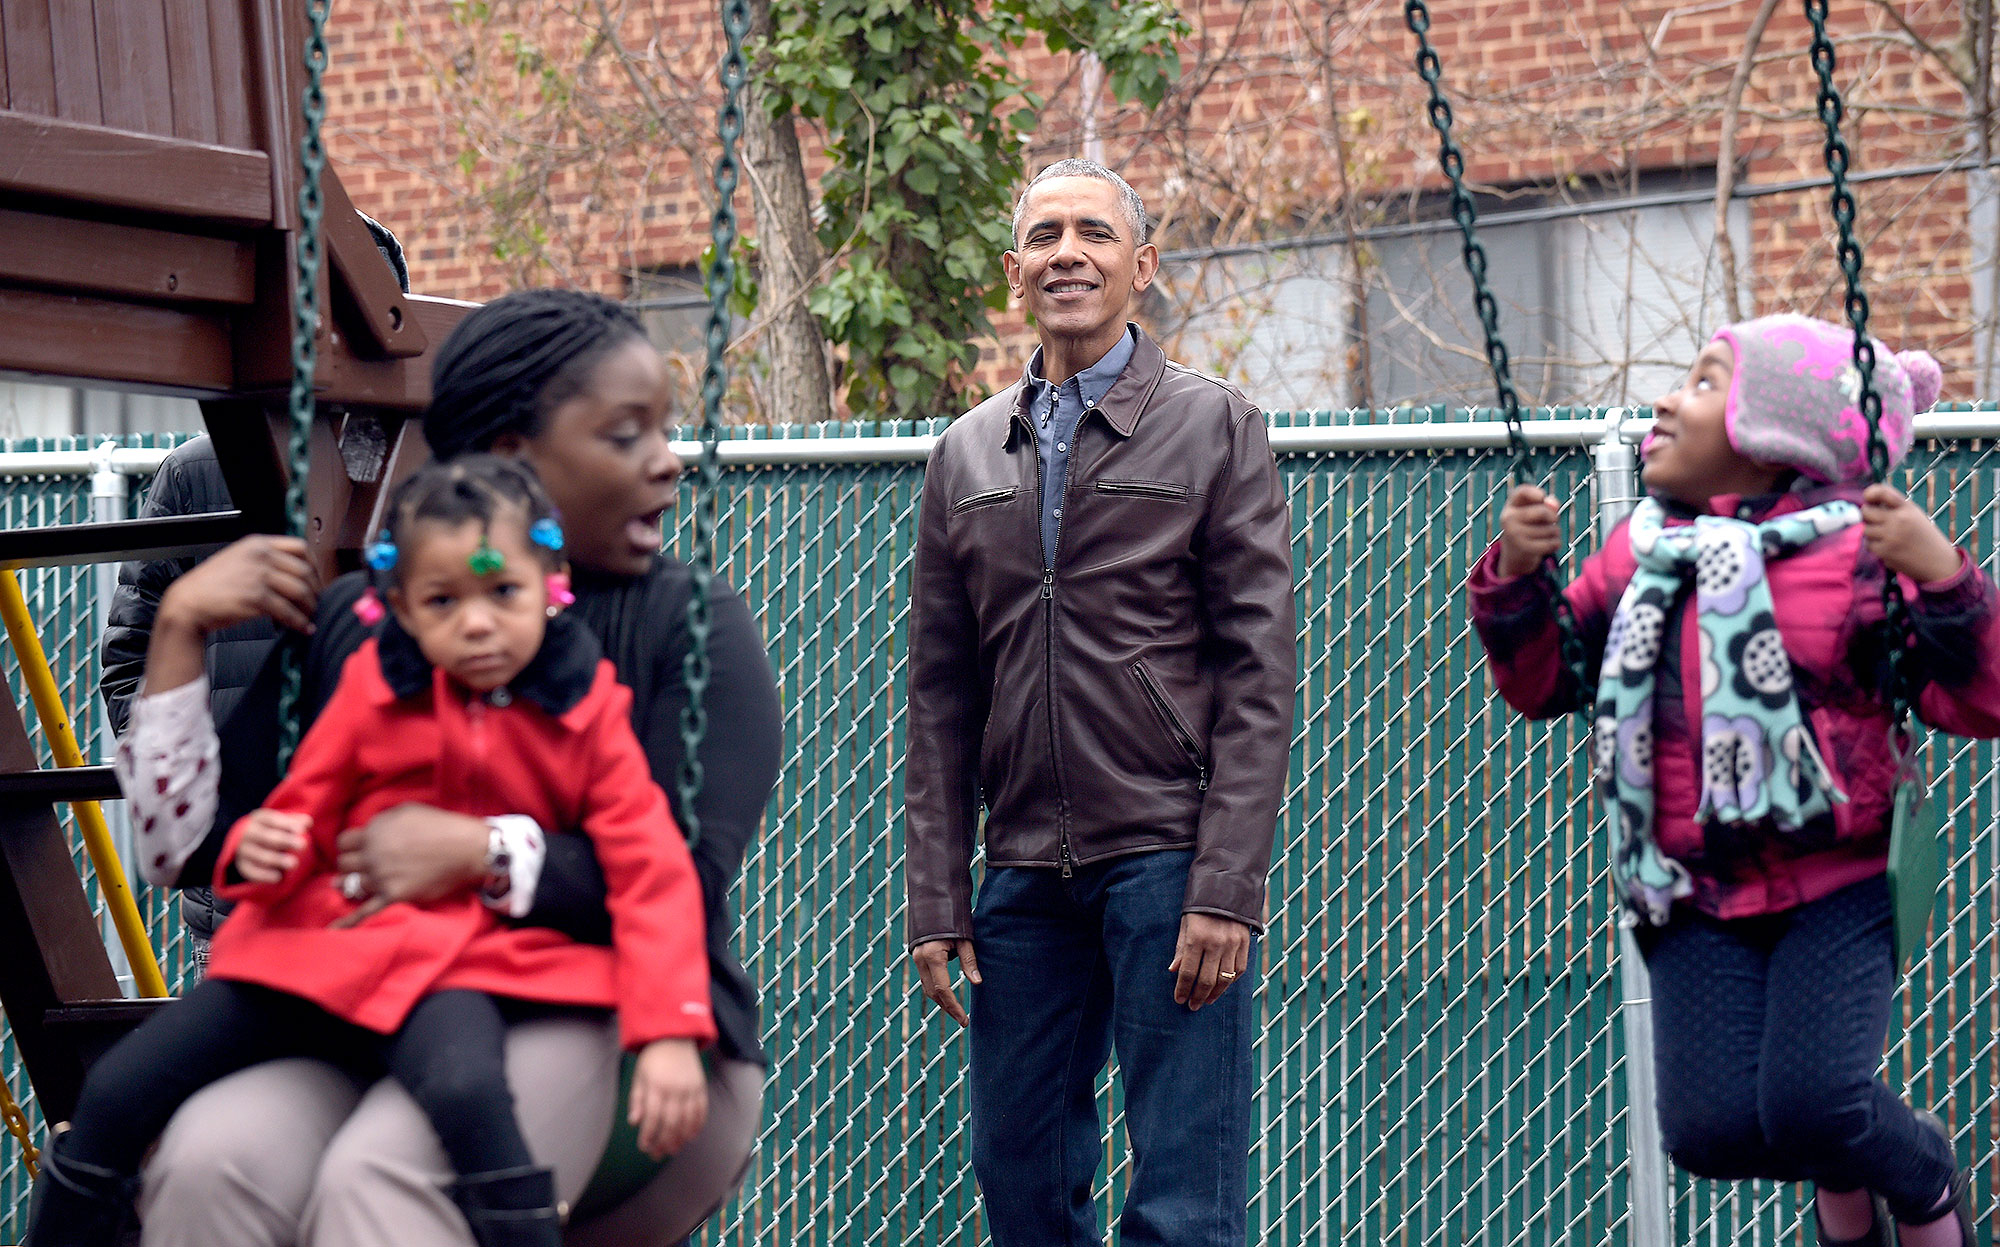 President Barack Obama watches as children play on the